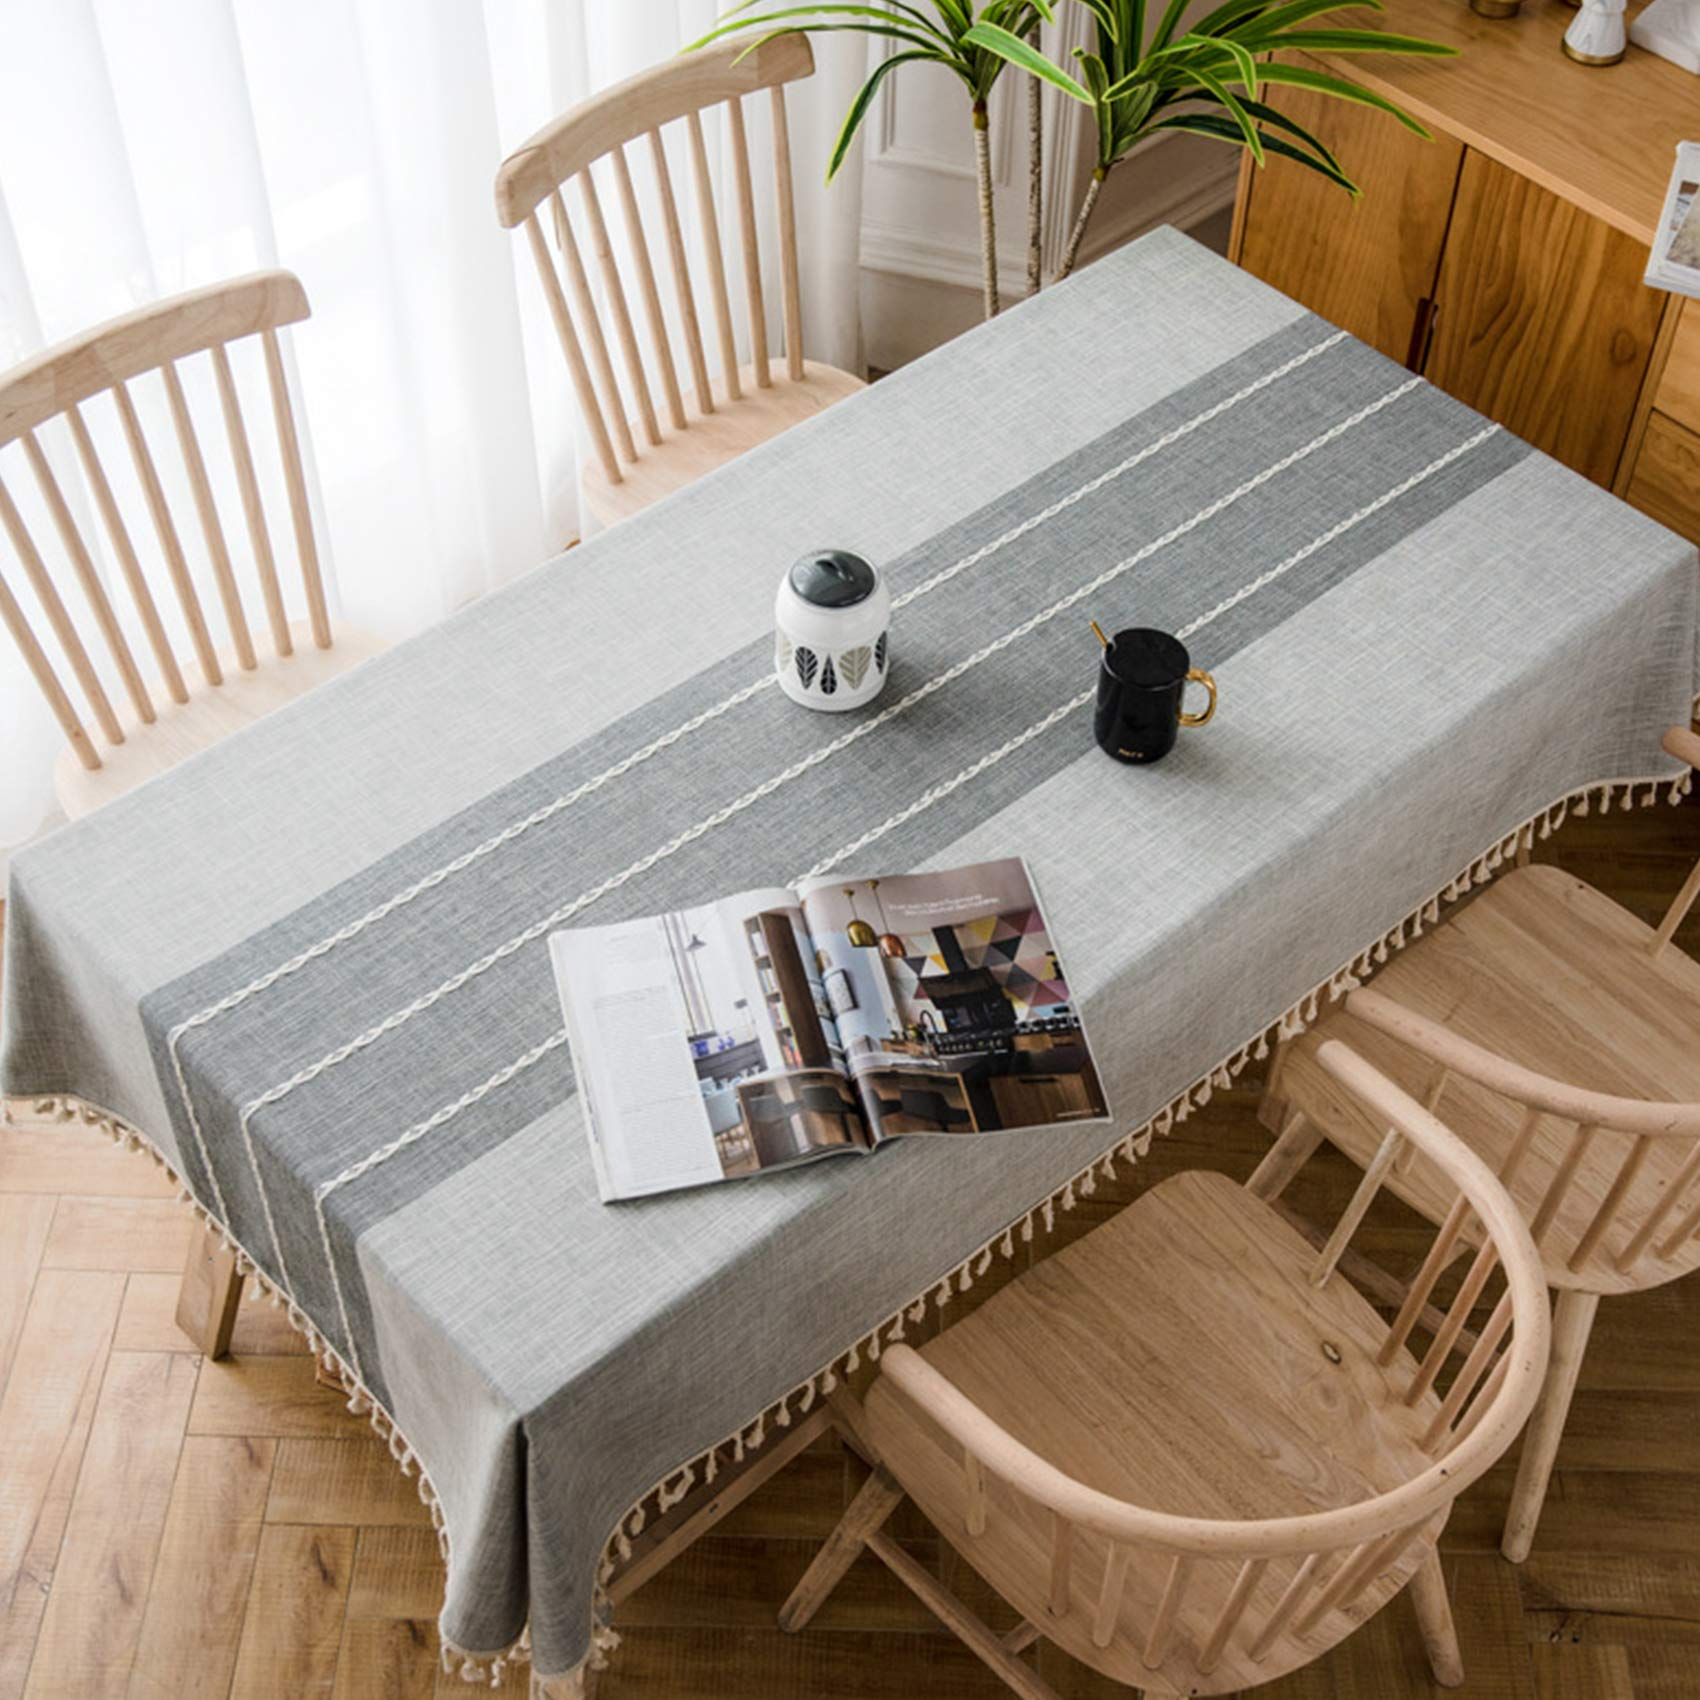 MoMA Gray Stitched Fringe Table Cloth (55''x70'') - Cotton Linen Table Cloths for Kitchen - Grey Fabric Table Cover - Modern Dining Table Cover - Outdoor Patio Rectangle Tablecloth